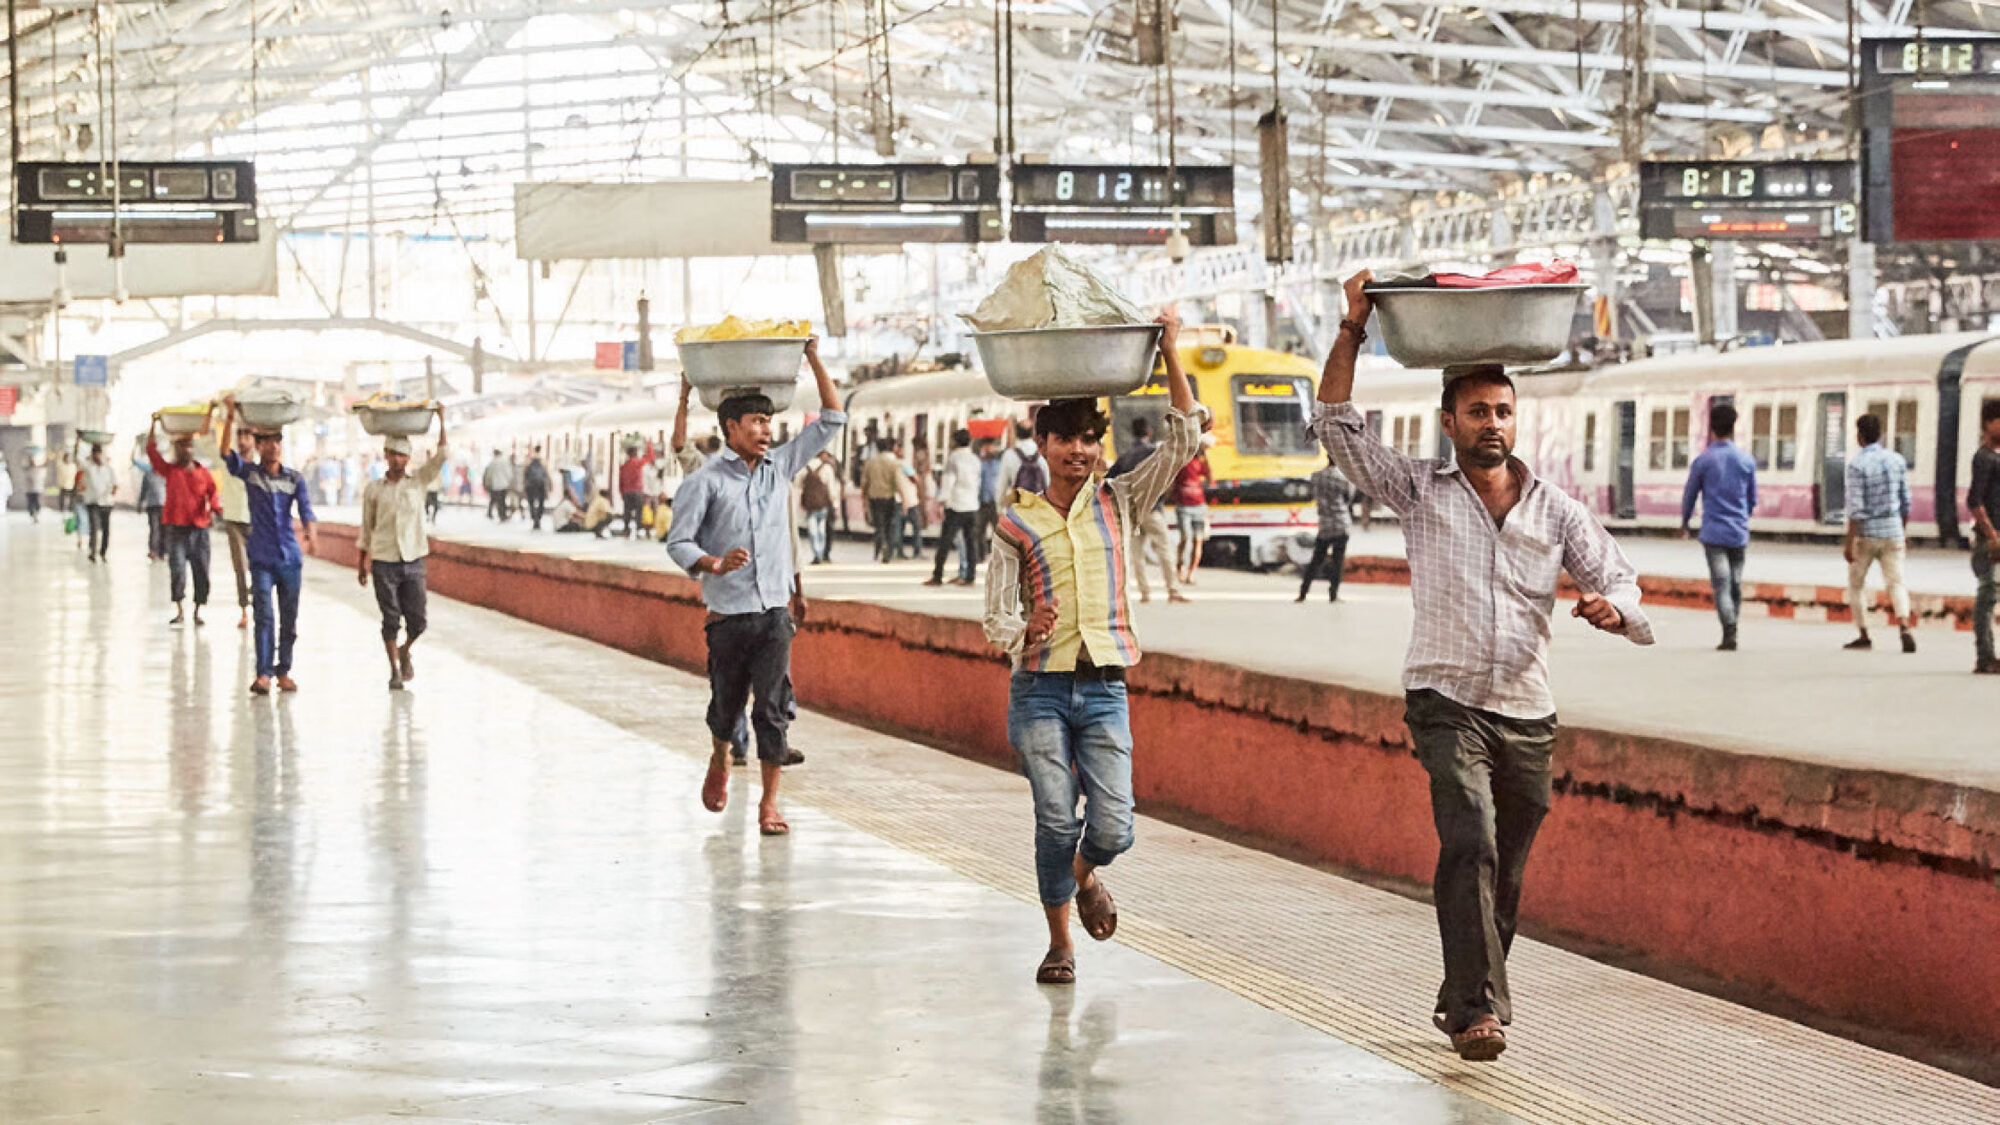 Article-Chaat-Train-Station